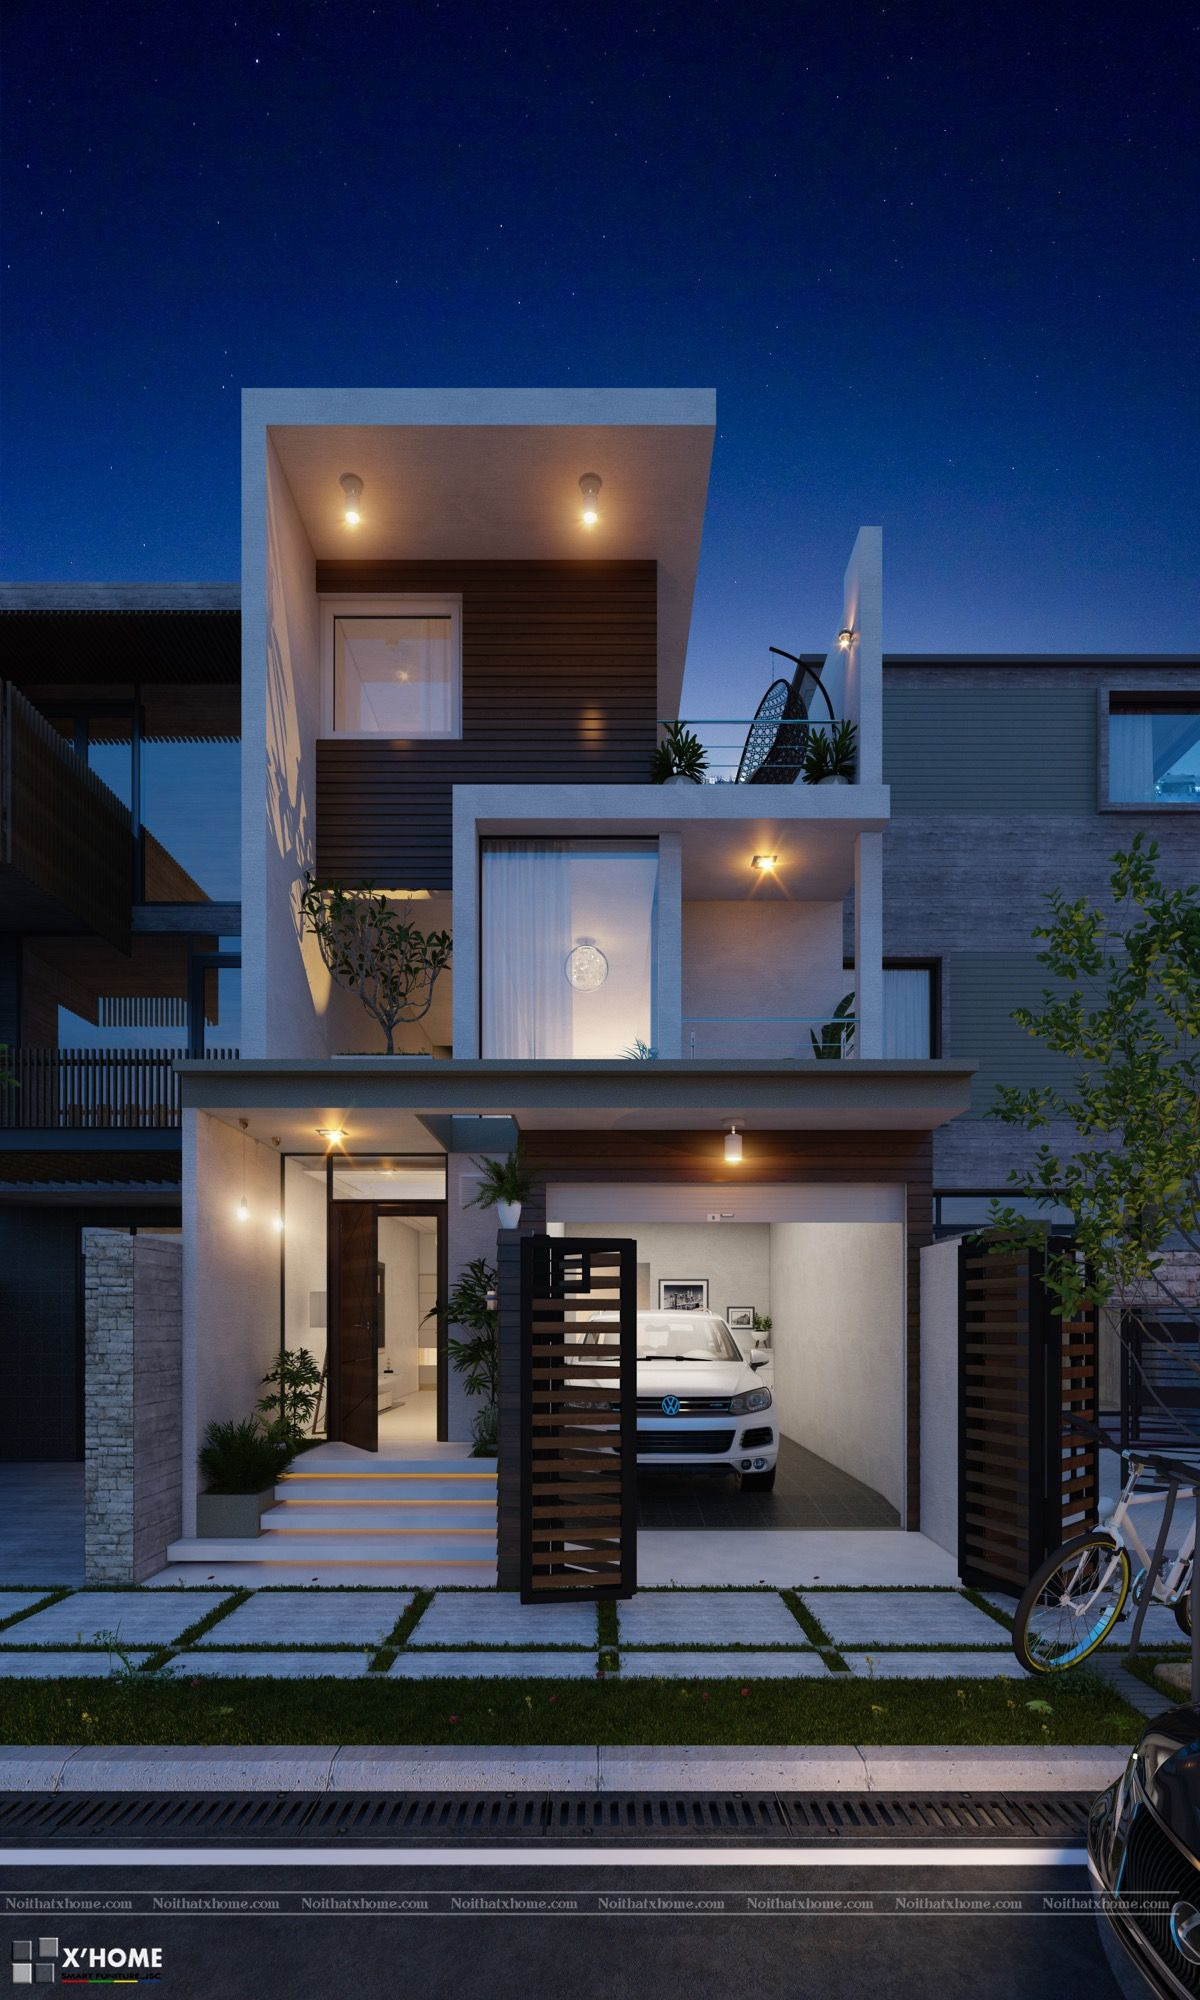 3 Storey House Plans for Small Lots Lovely 50 Narrow Lot Houses that Transform A Skinny Exterior Into